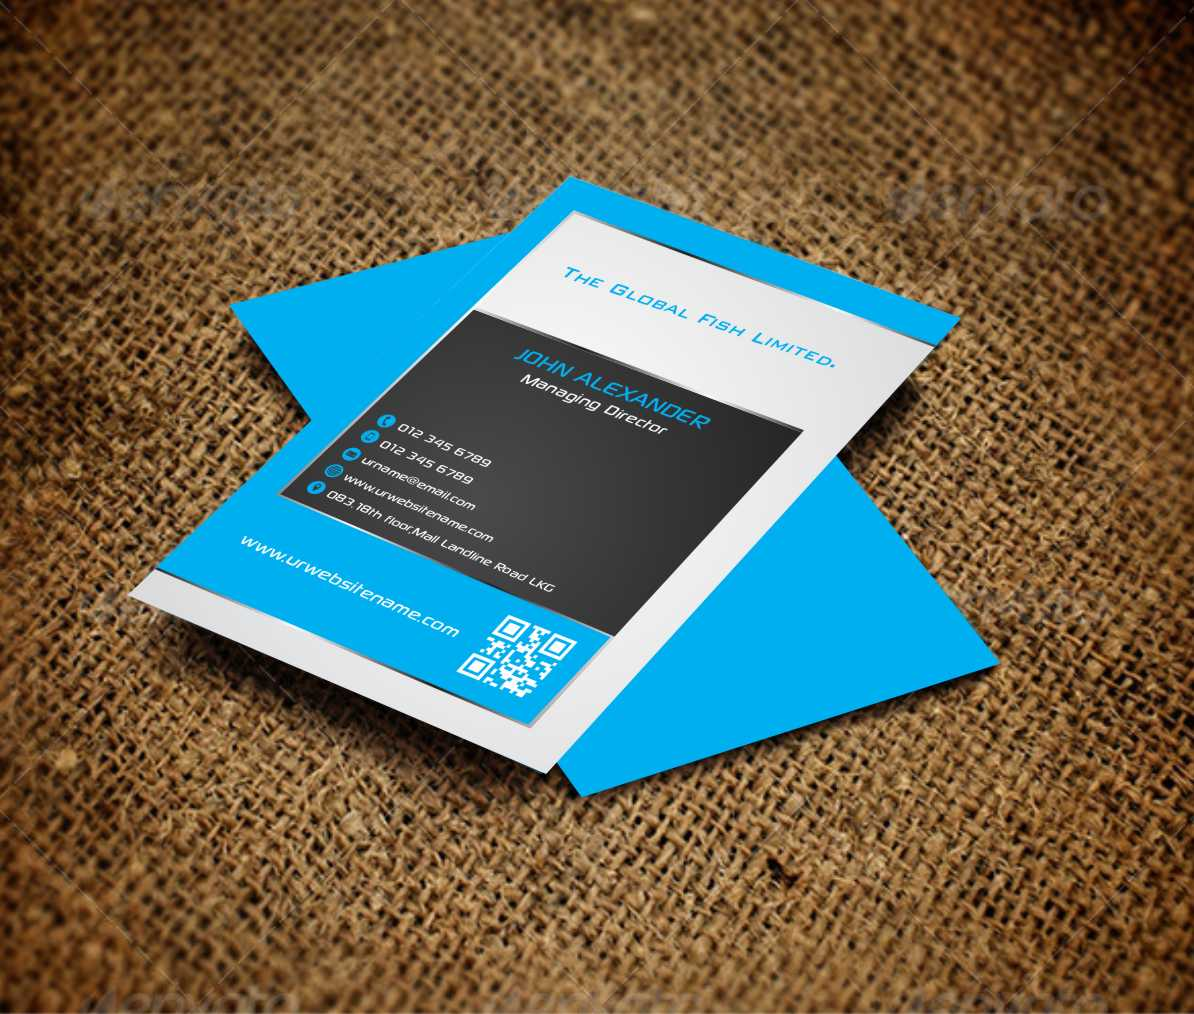 Business business card design for a company by awsomed design 3423987 business business card design for a company in united kingdom design 3423987 colourmoves